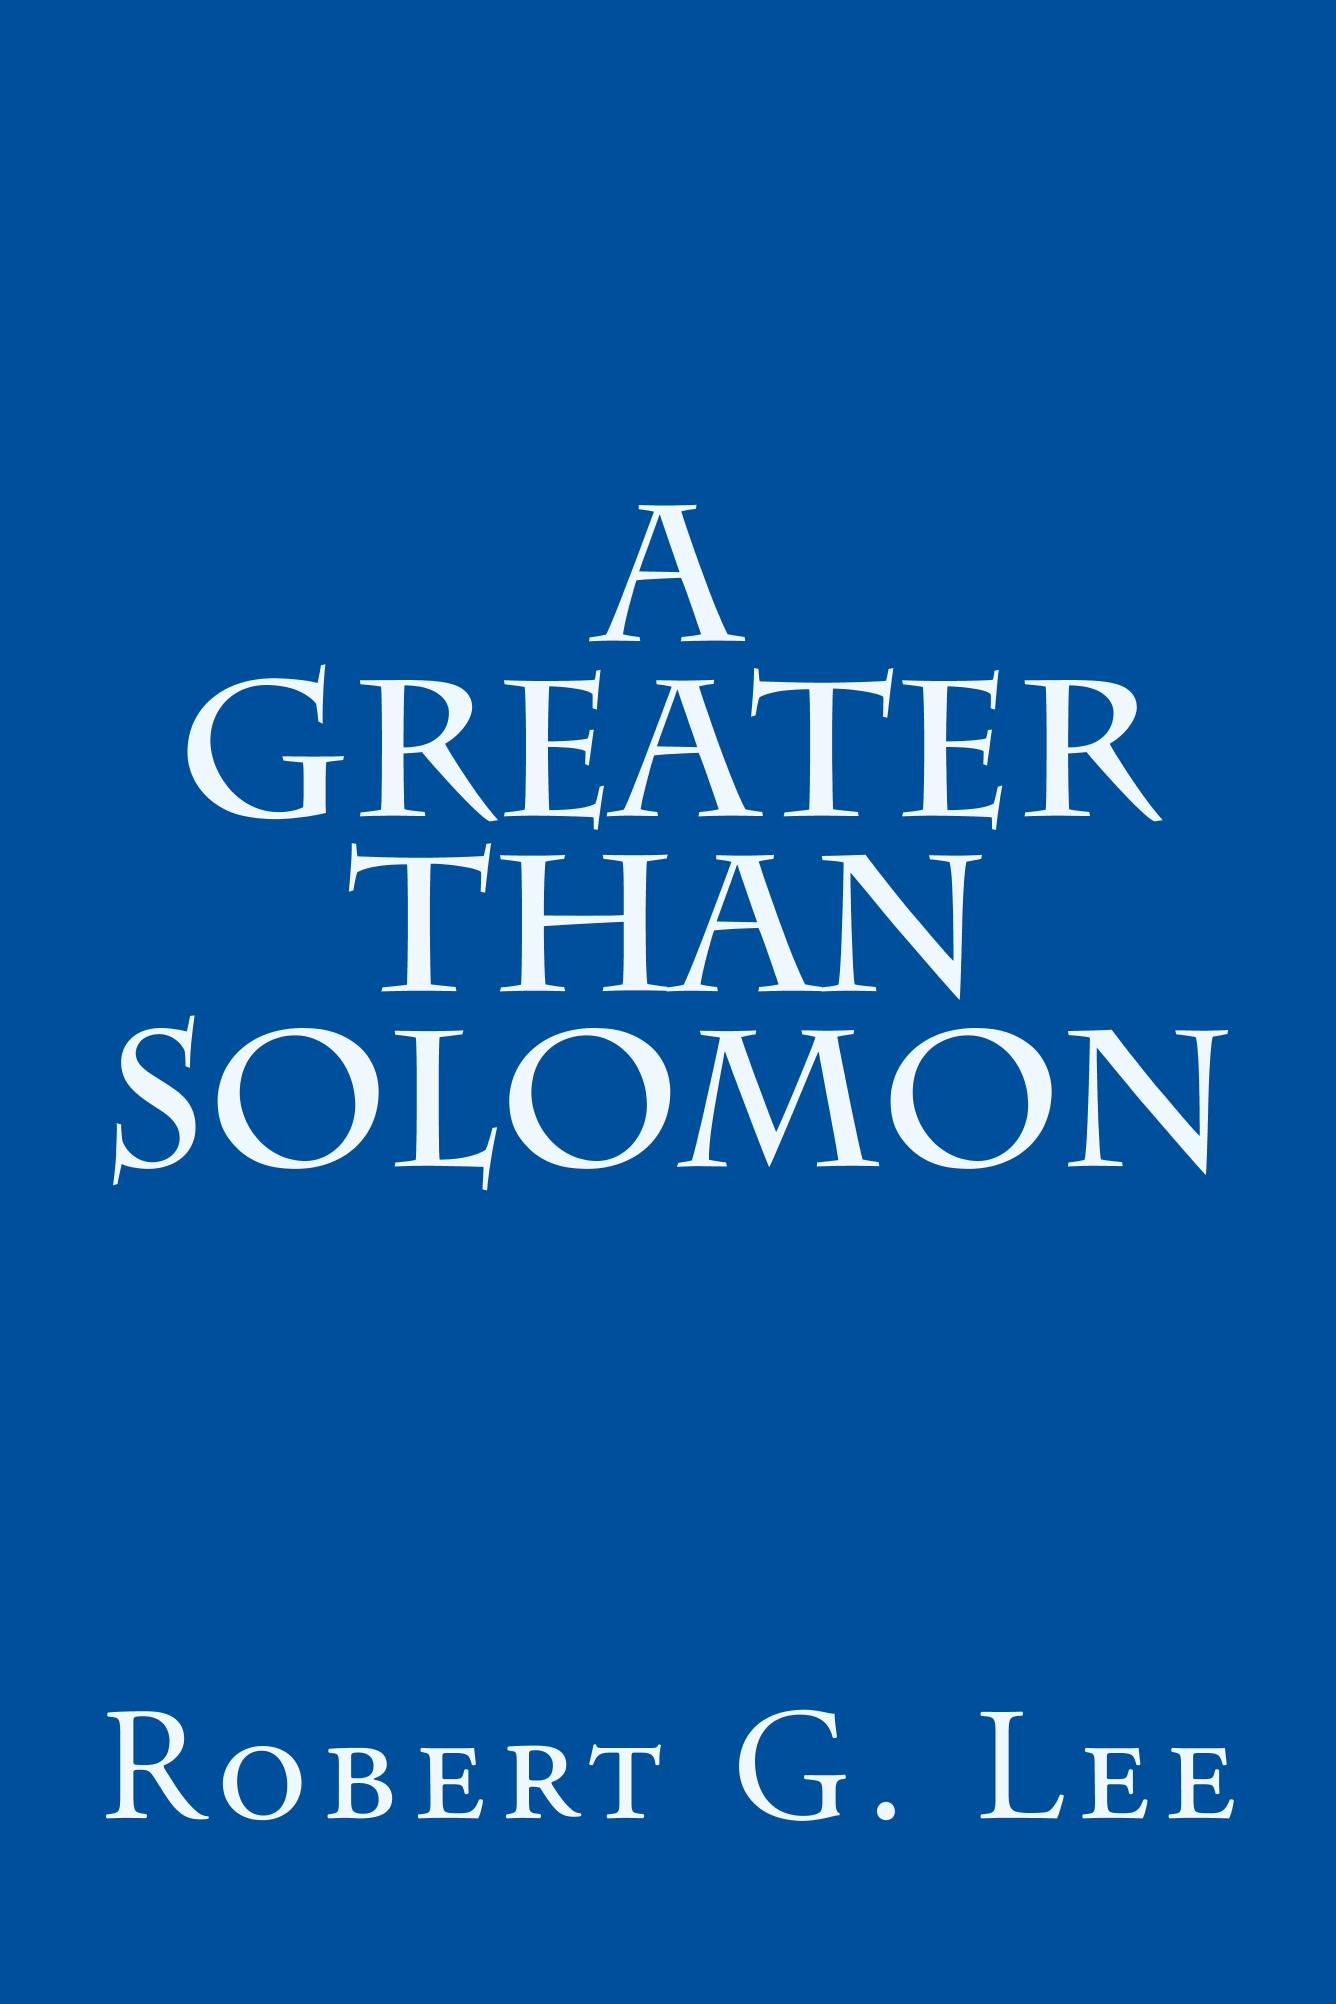 A_Greater_Than_Solom_Cover_for_Kindle